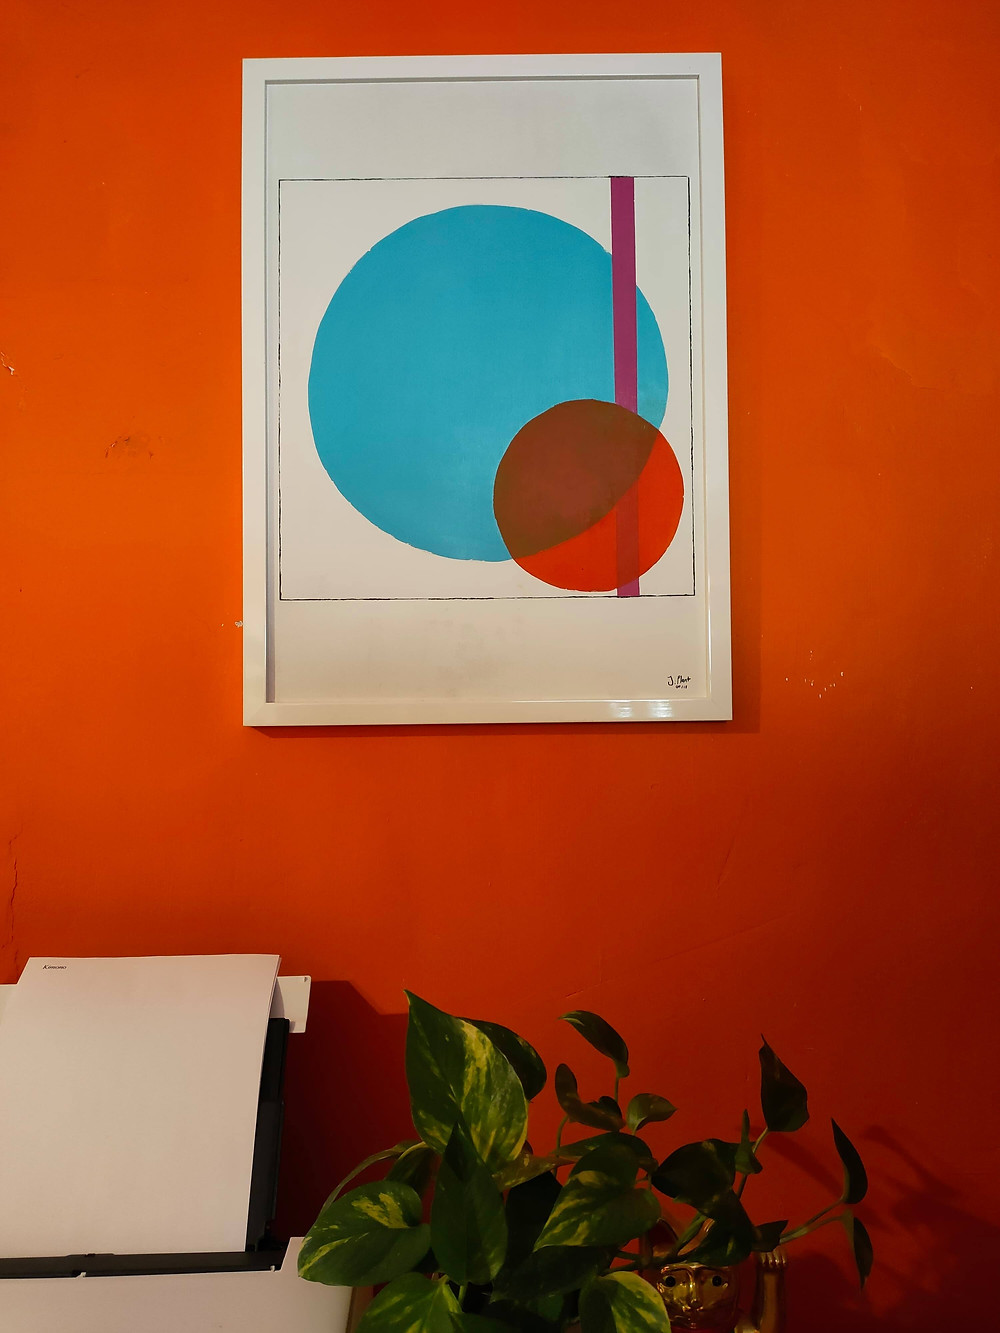 Abstract, bold, orange, blue, pink, home office space